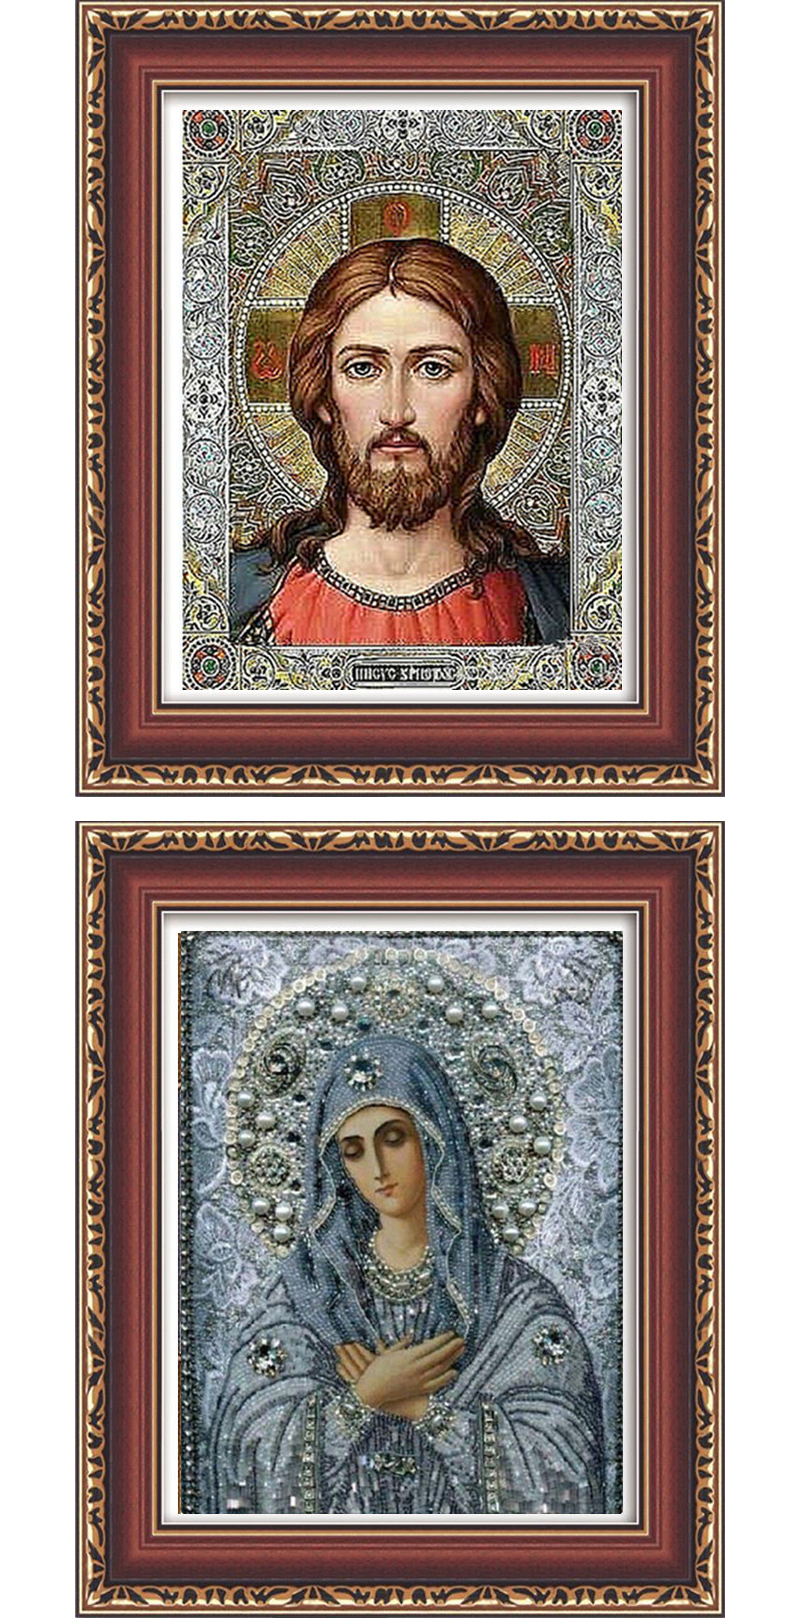 Honana WX-677 5D Round Diamond Painting DIY Cross Stitch Home Decor Diamond Embroidery Religious Gift